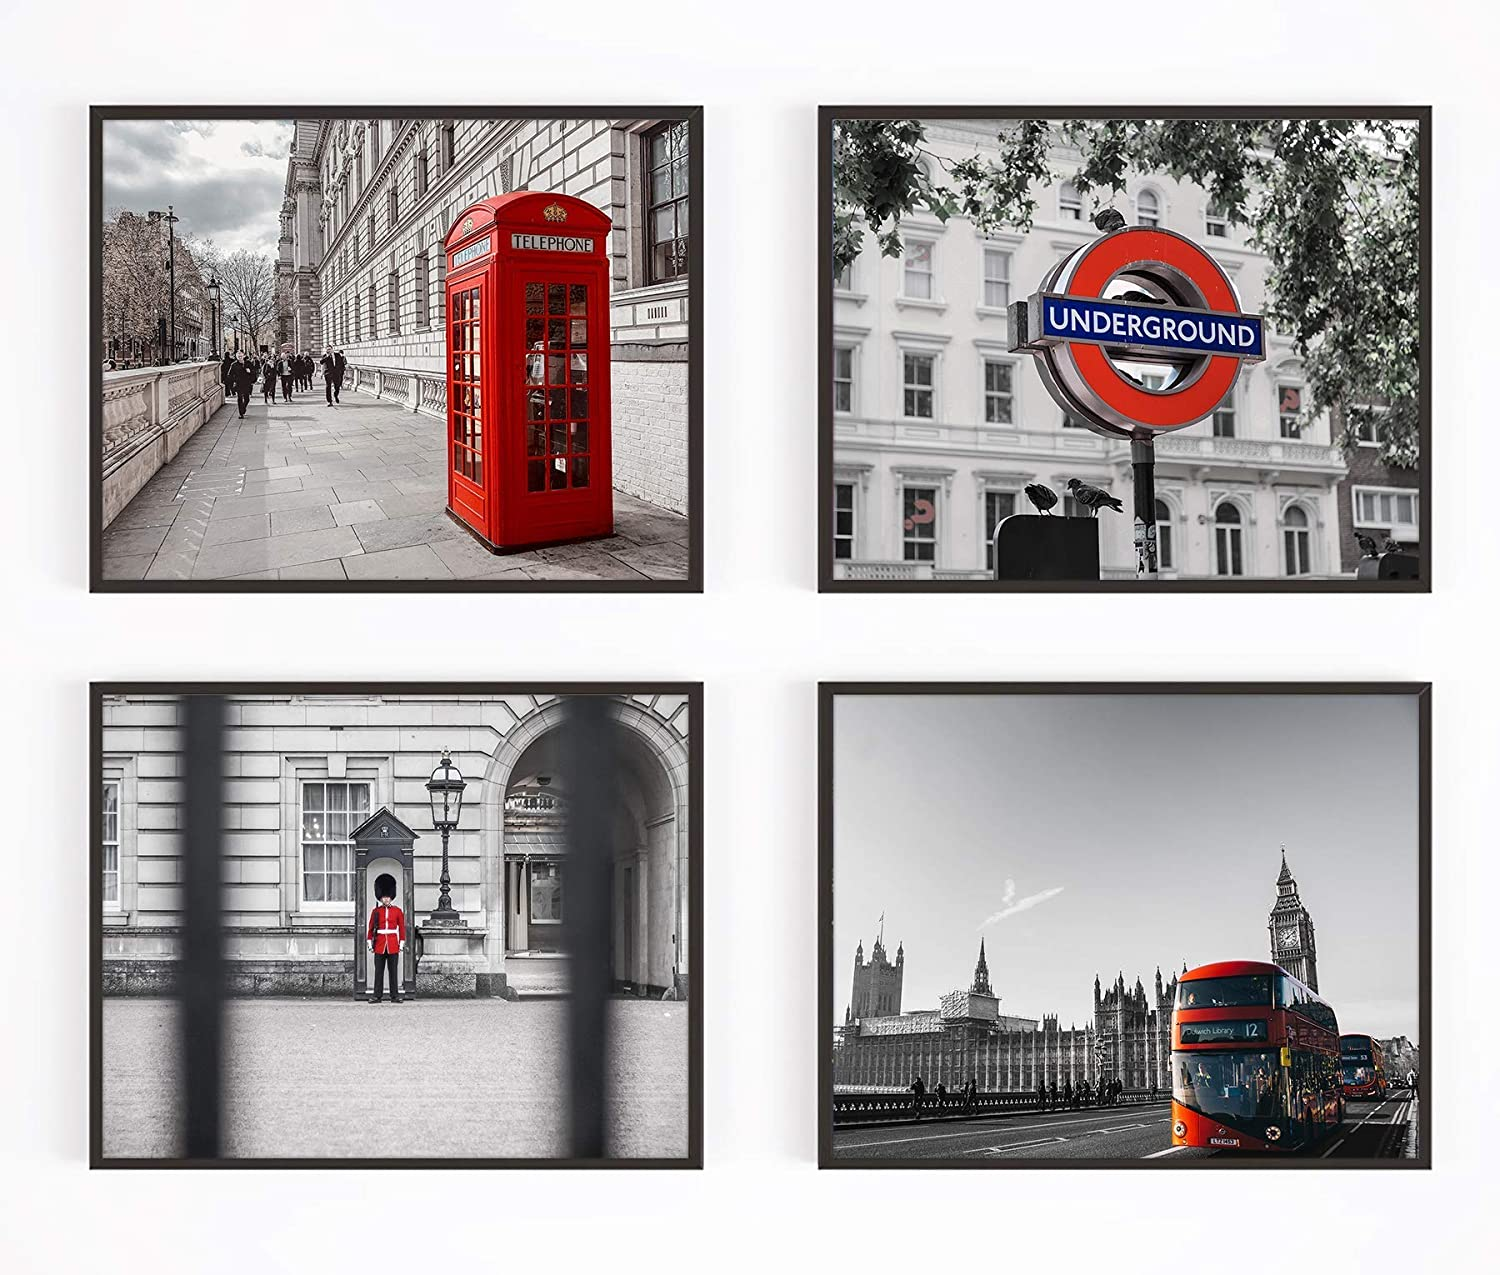 Vintage London England Photography Photographic Prints, Set of 4, Unframed, Red Phone Booth, Guard, Double Decker Bus, Underground Subway Art Decor Poster Sign, 8x10 Inches